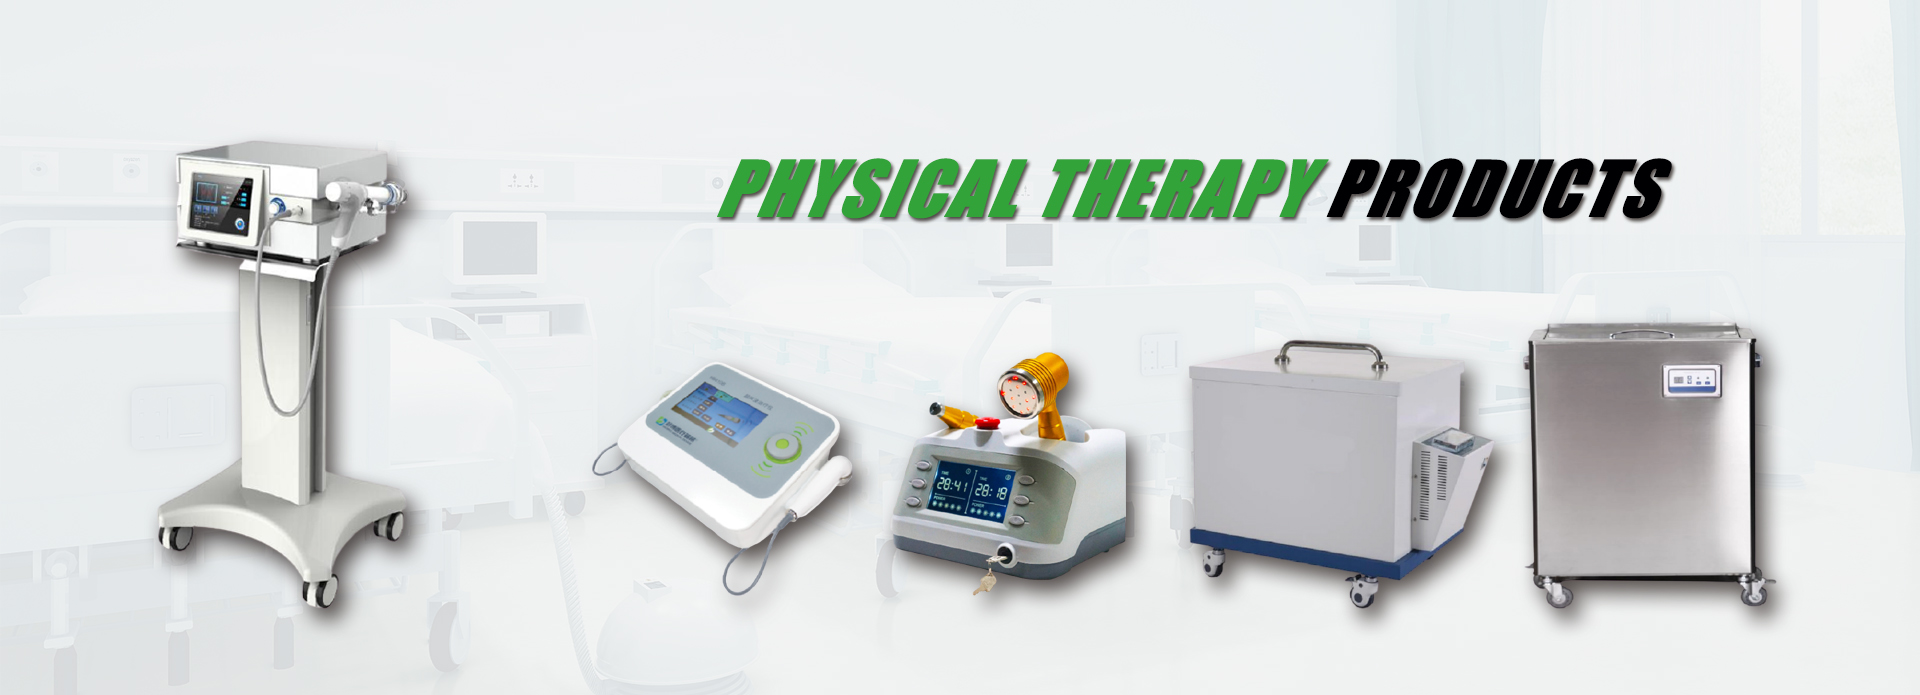 PHYSICAL THERAPY PRODUCTS1